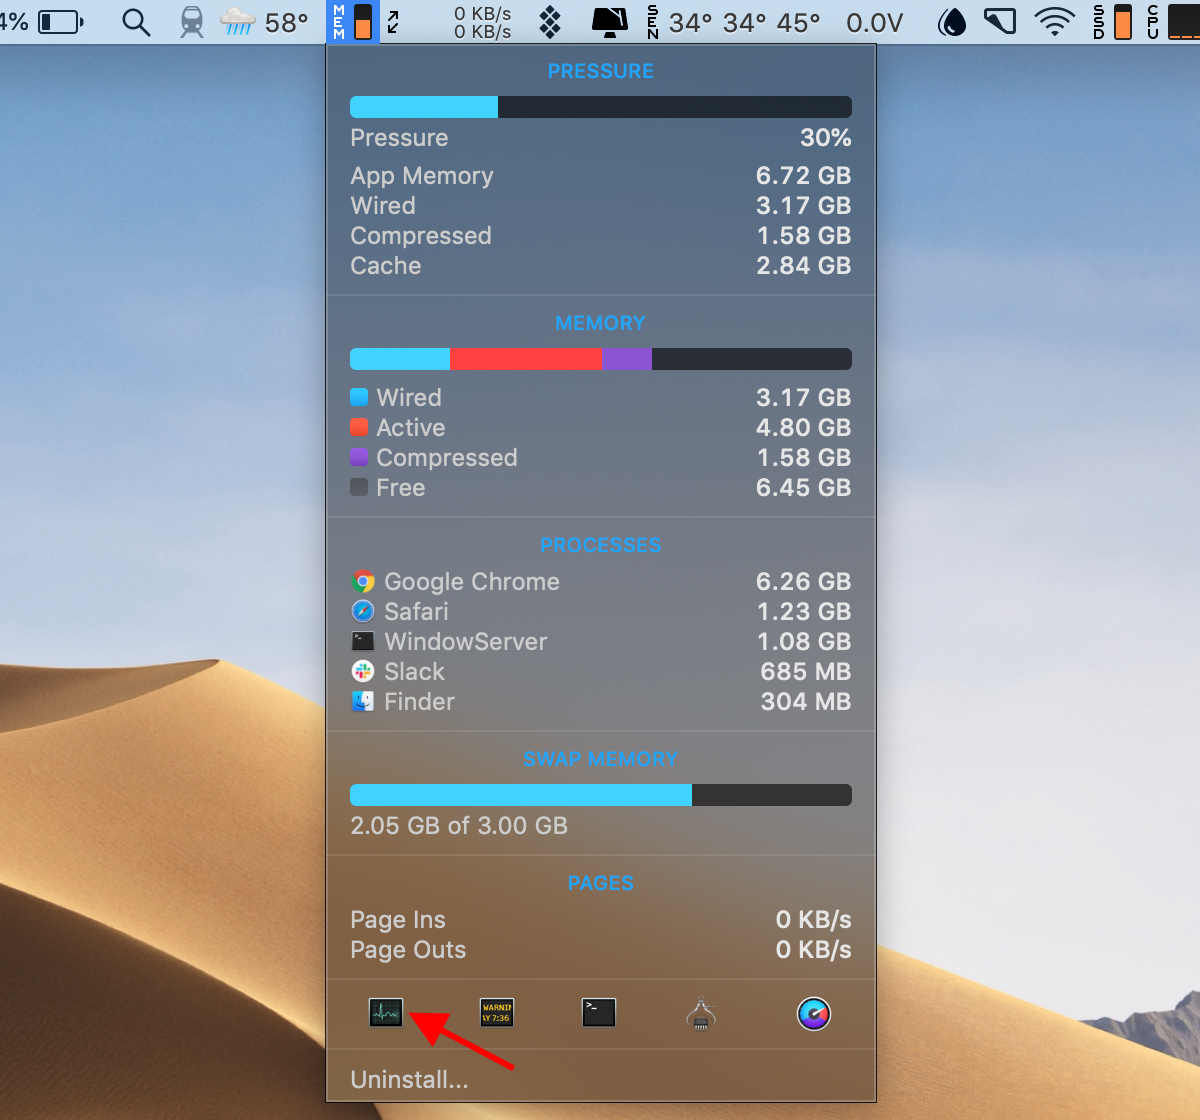 launch Activity Monitor from the iStat Menus